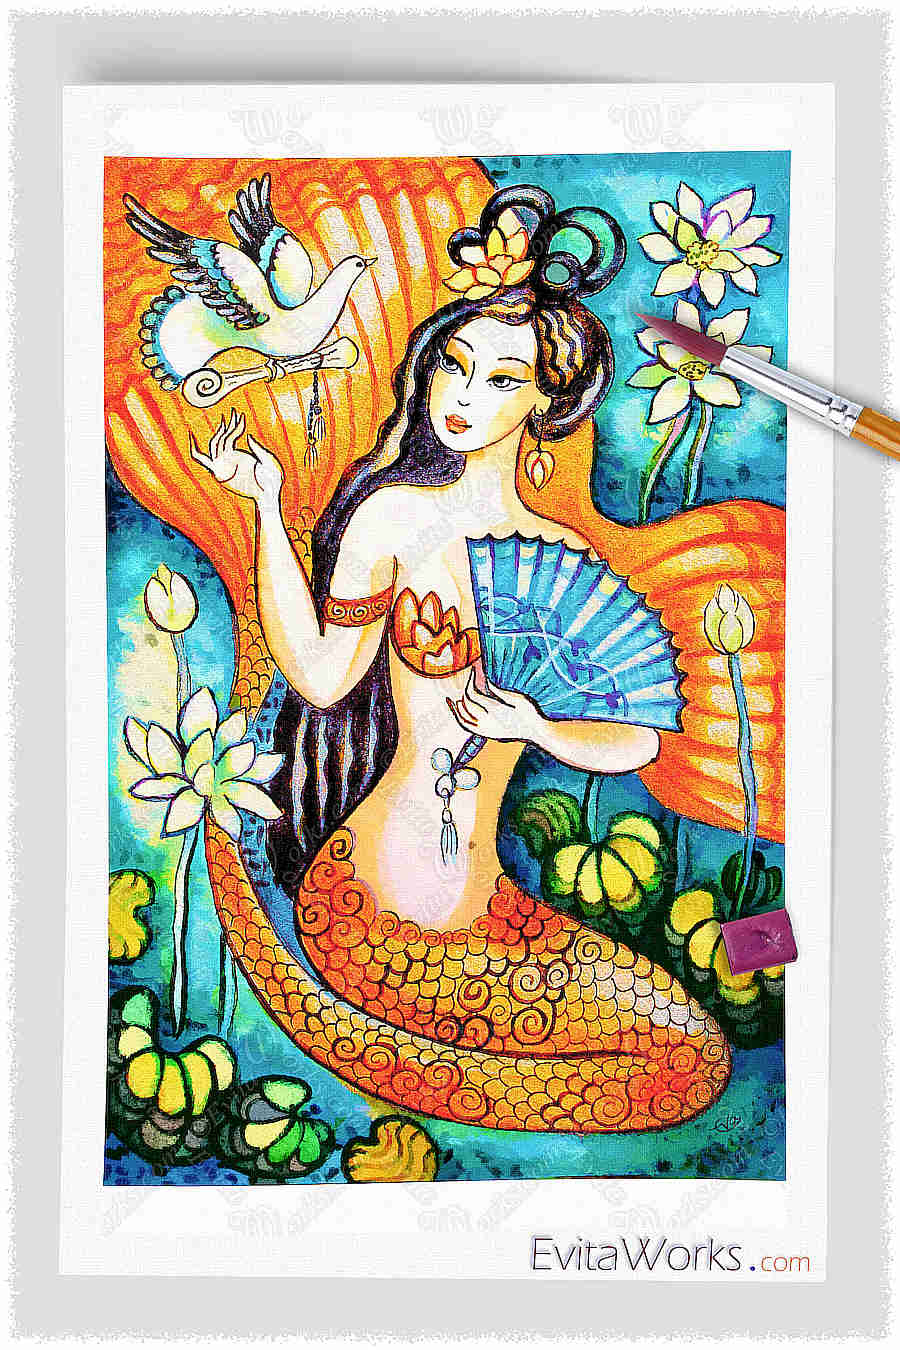 Mermaid 09 ~ EvitaWorks